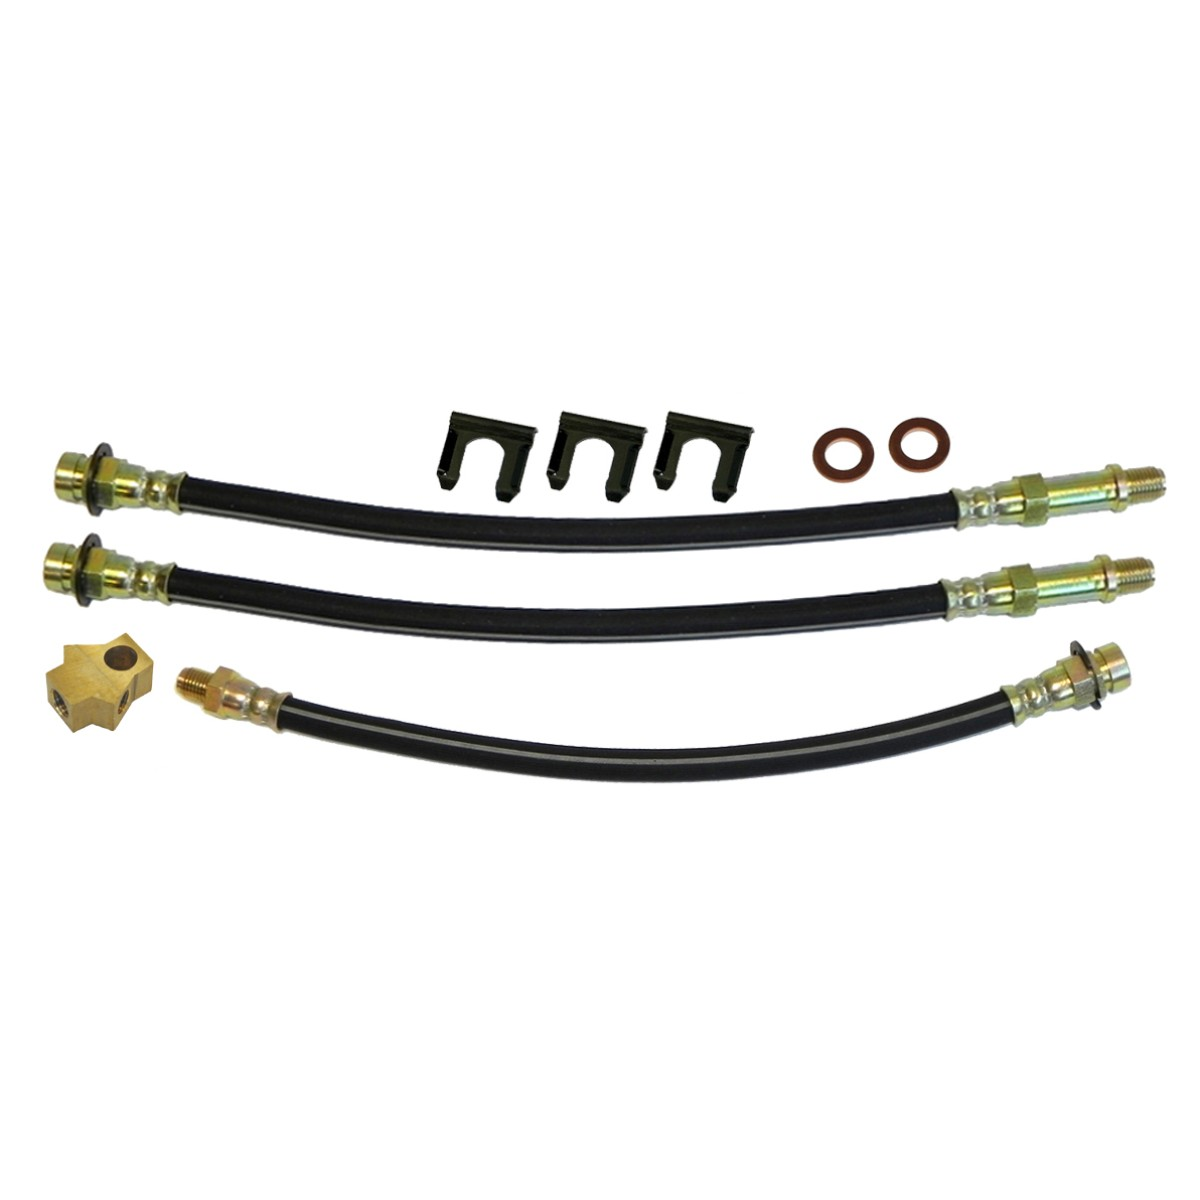 1966-69 Mopar B-body Drum Brake 3 Hose Kit, 8 3/4